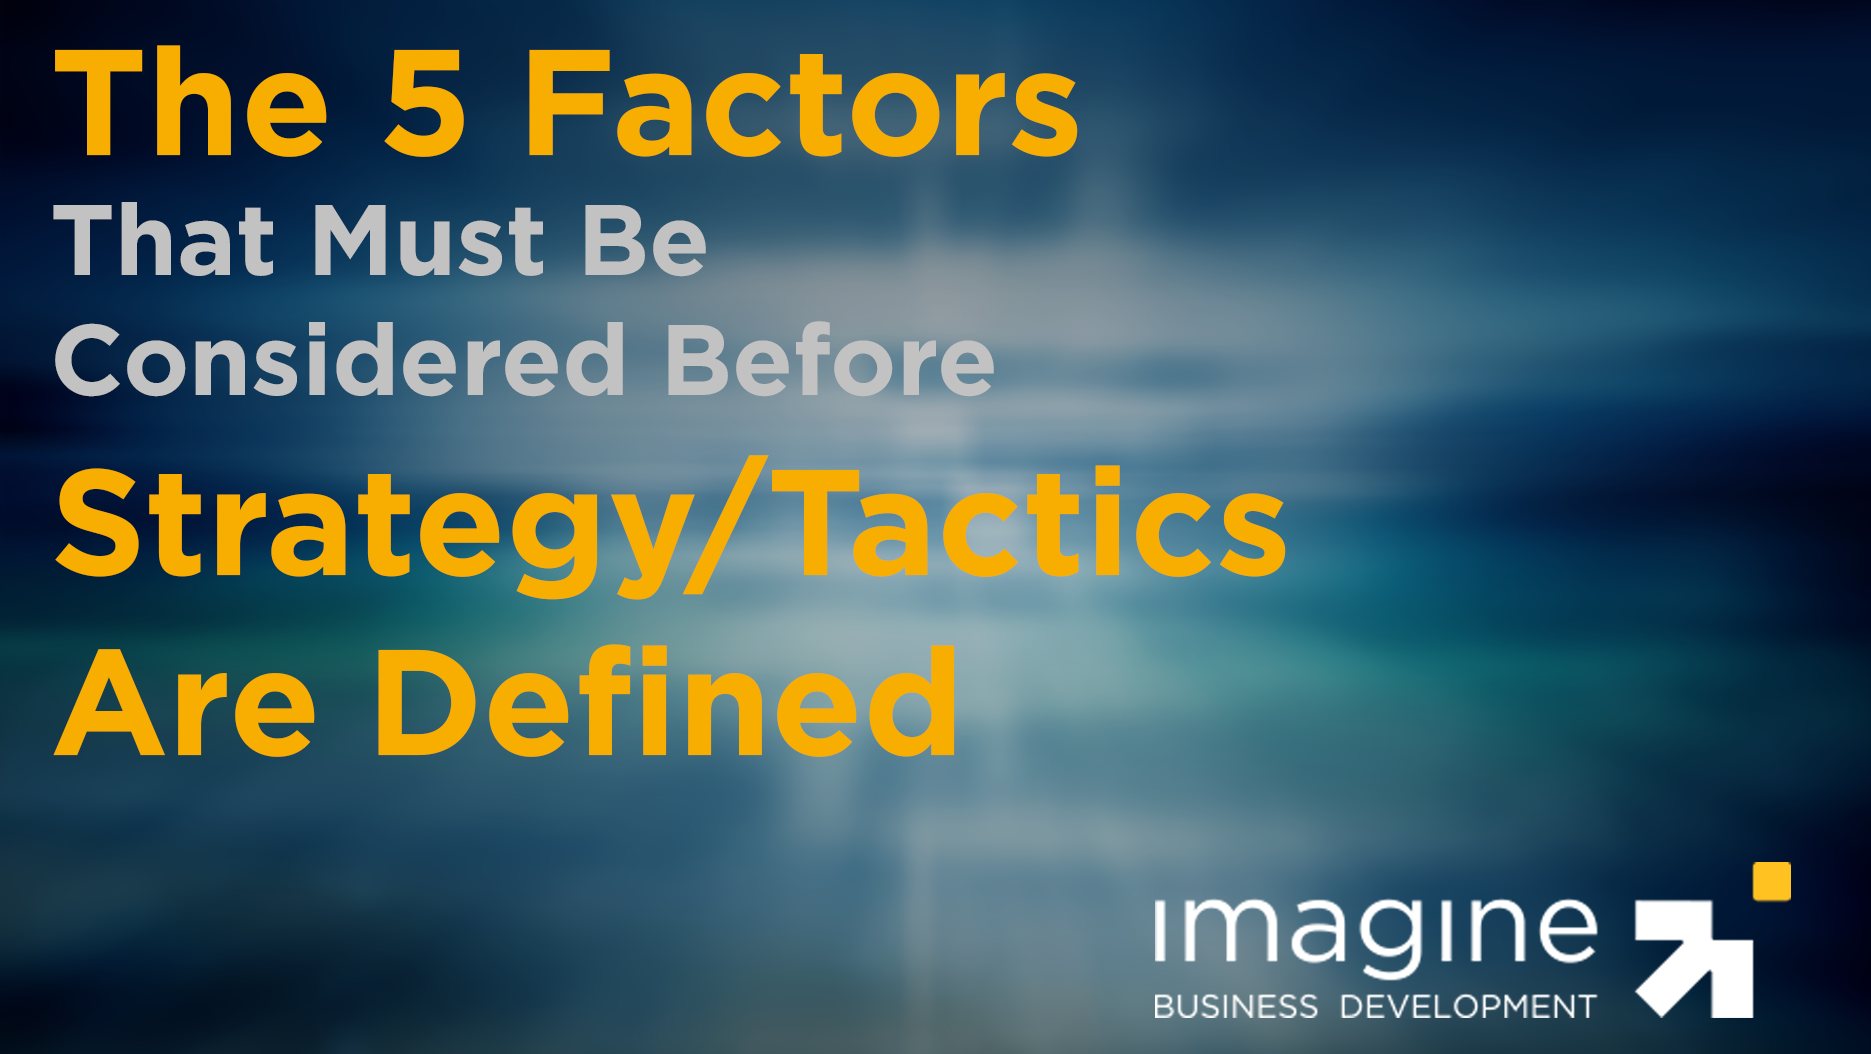 5 Factors That Must Be Considered Before Strategy/Tactics Are Defined